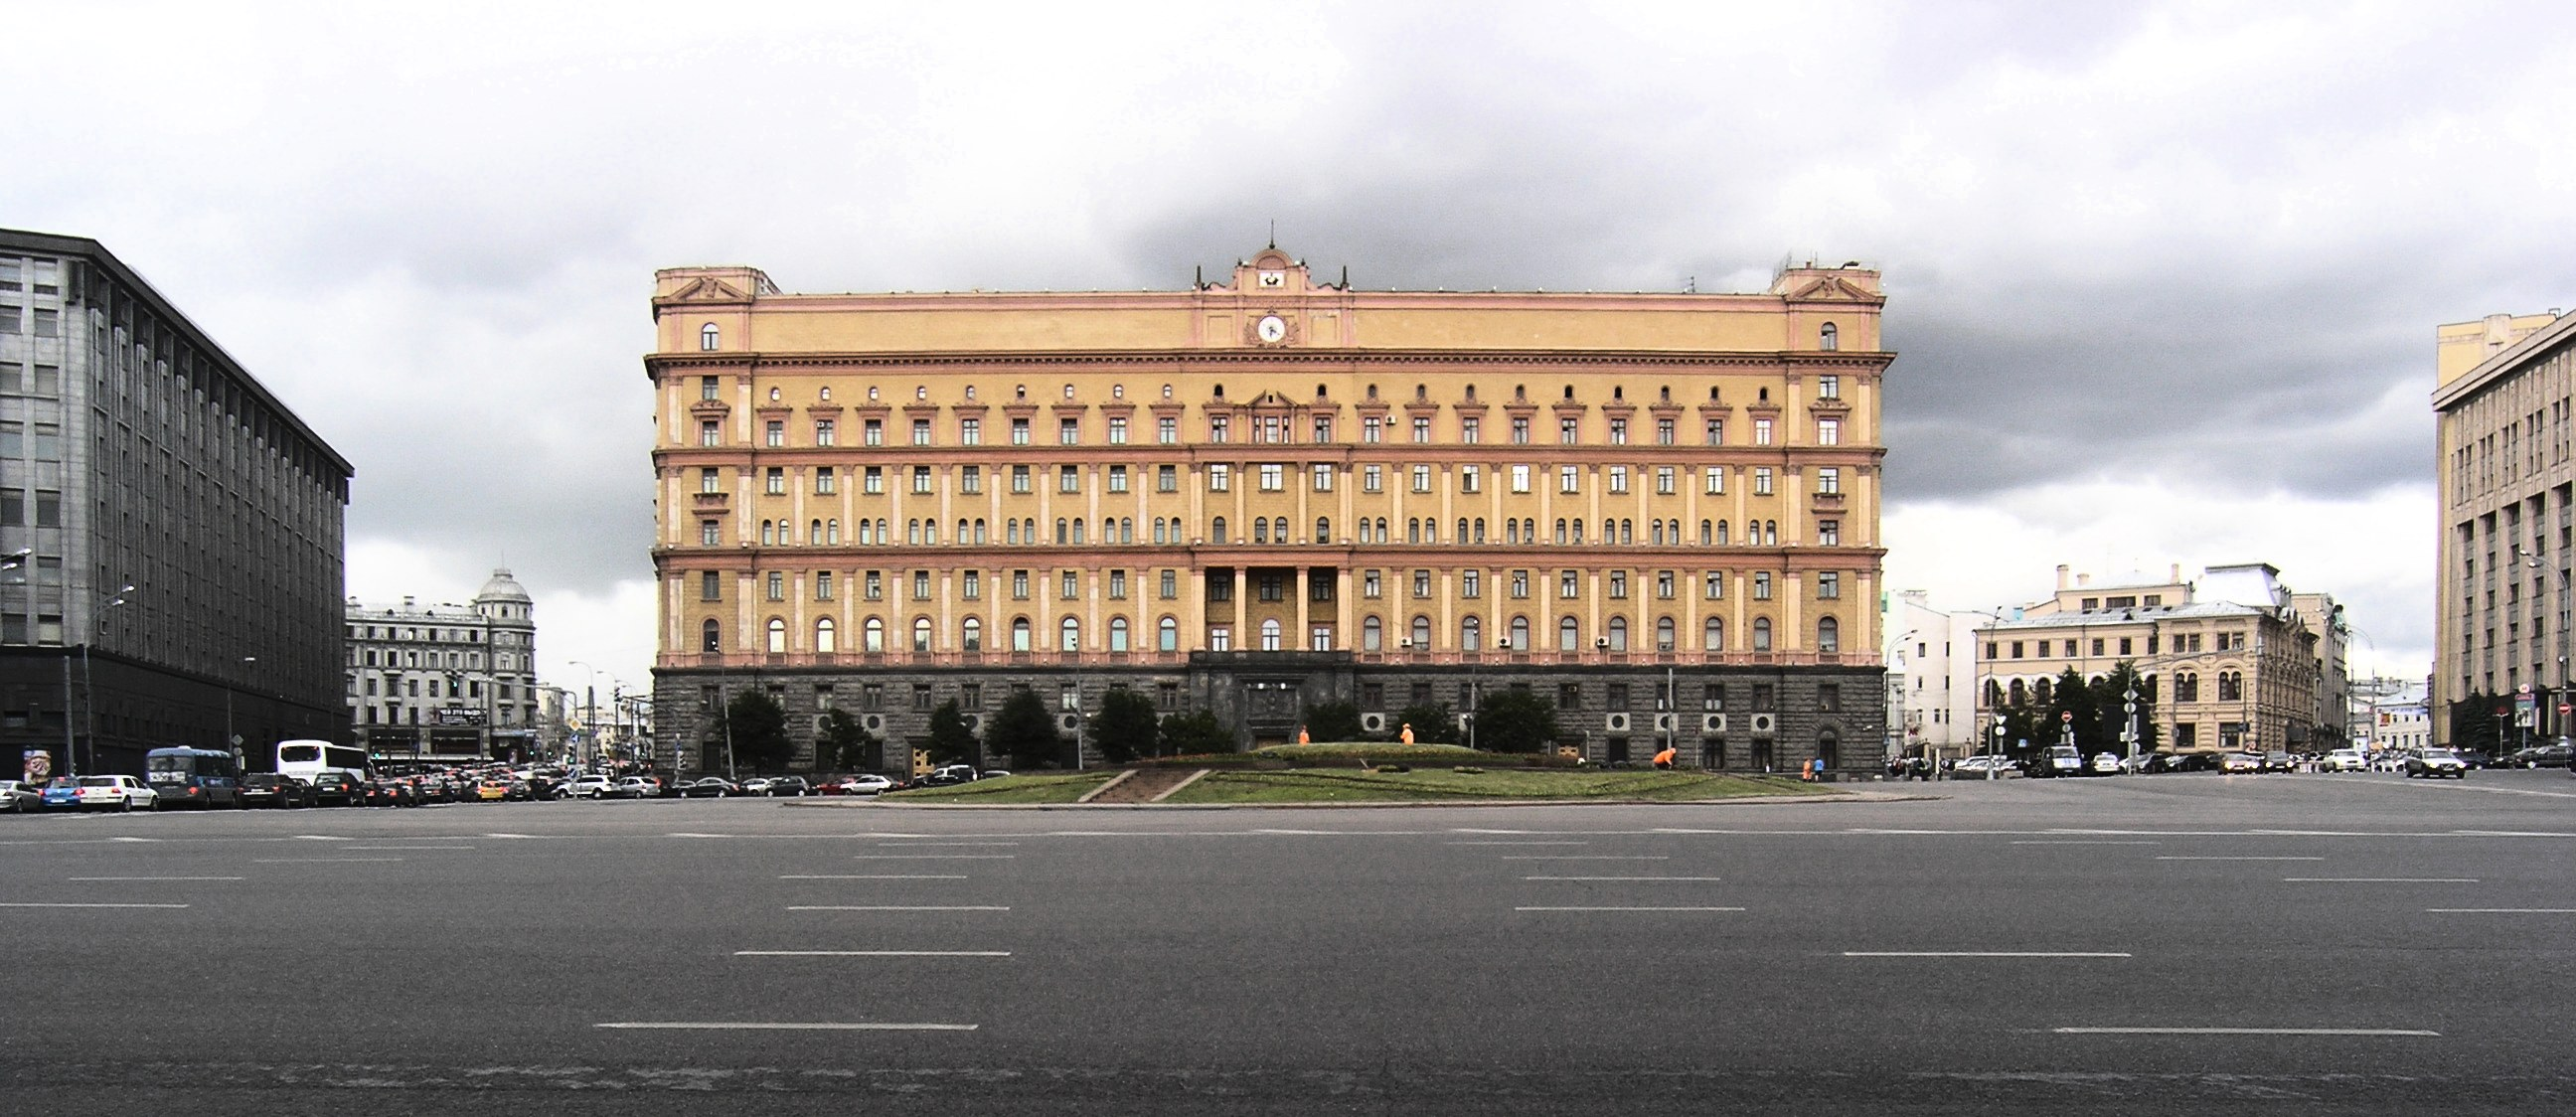 http://upload.wikimedia.org/wikipedia/commons/f/f6/Lubyanka_KGB.jpg